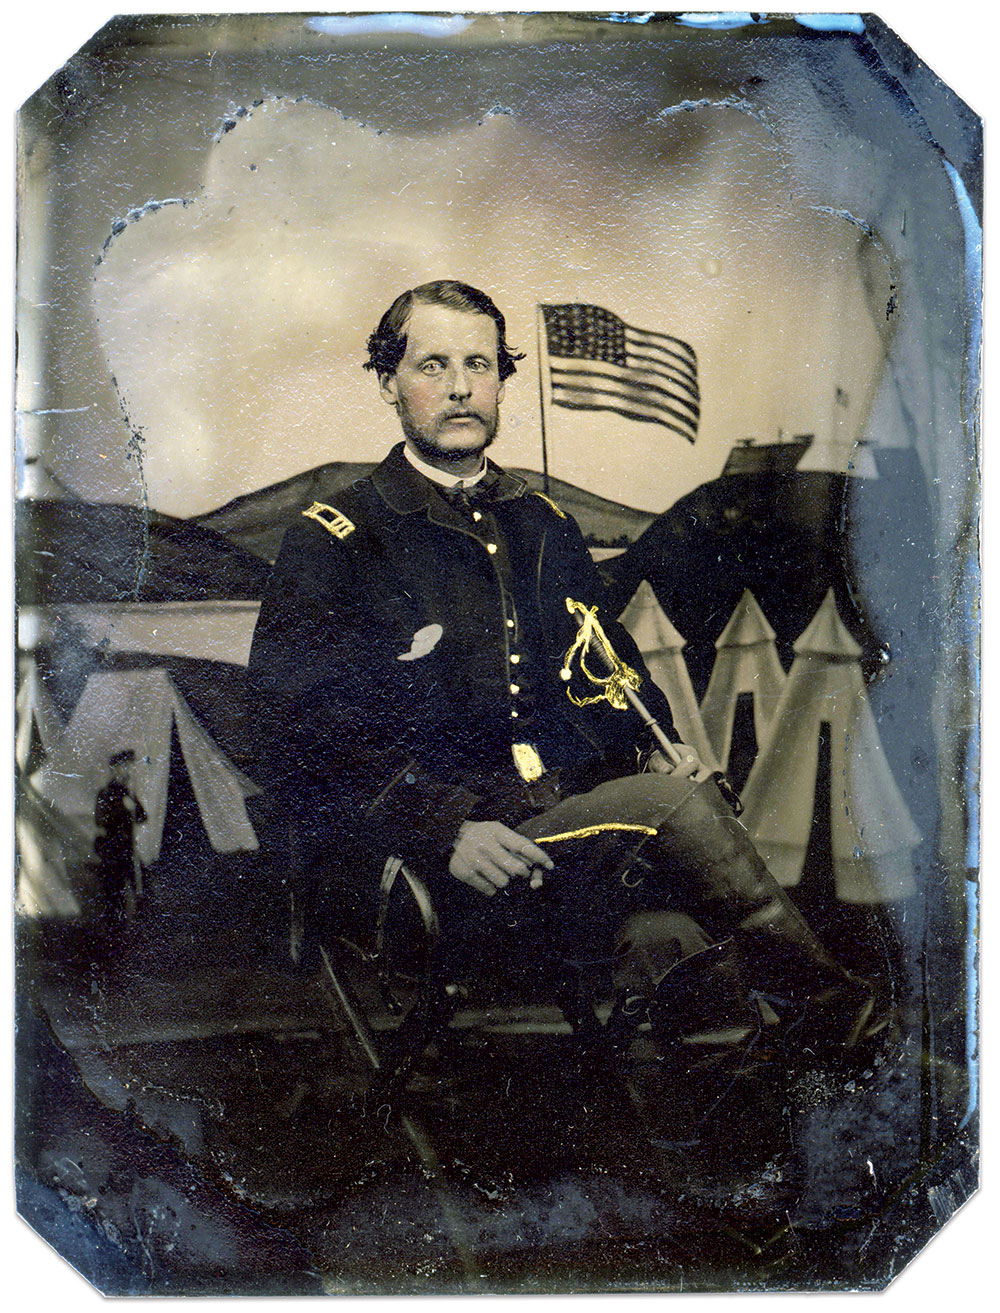 """THE STAR-SPANGLED BANNERpainted into the backdrop includes 35 stars in an uncommon arrangement of columns of five and six stars with two stars on the far left of the canton. The captain seated in front of it is Francis Bedell """"Frank"""" Allibone of Company B of the 1st New Jersey Cavalry. Allibone barely survived the surrender at Appomattox, dying after a fall from his horse on May 9, 1865, at Petersburg, Va. Quarter-plate tintype. Andrew German Collection."""